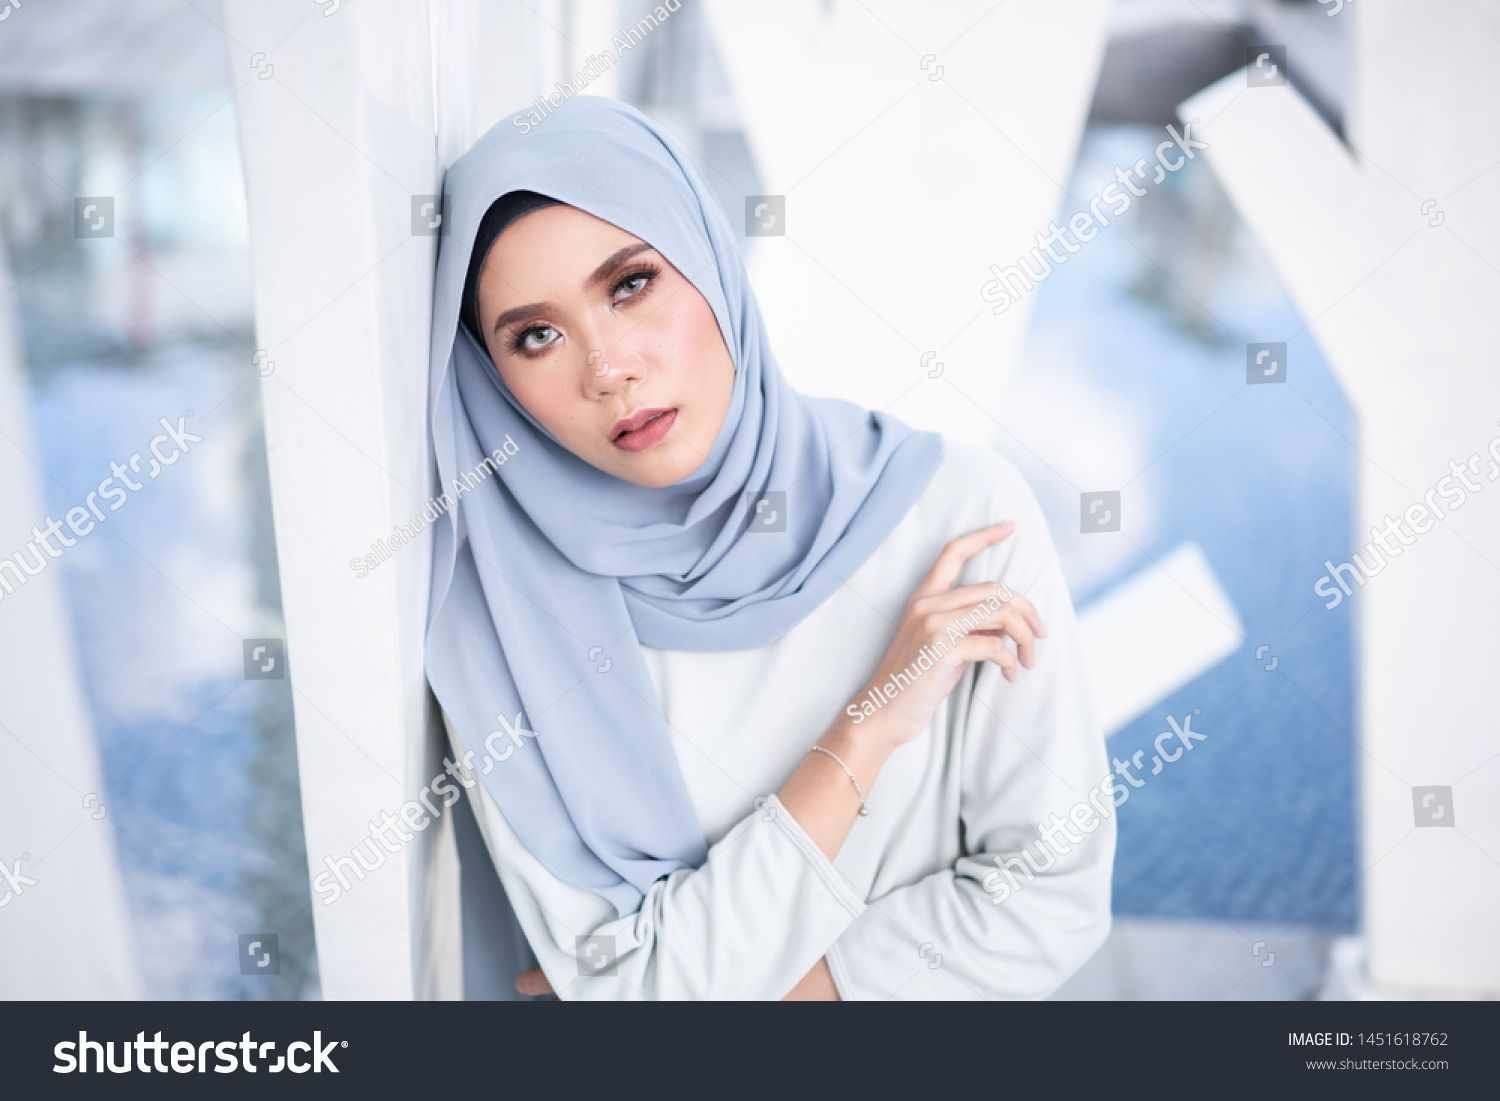 Beautiful Young Model In Fashionable Hijab Style Posing In Urban Environments Stylish Muslim Hijab Fashion Lifestyle P In 2020 Fashion Hijab Fashion Fashion Lifestyle